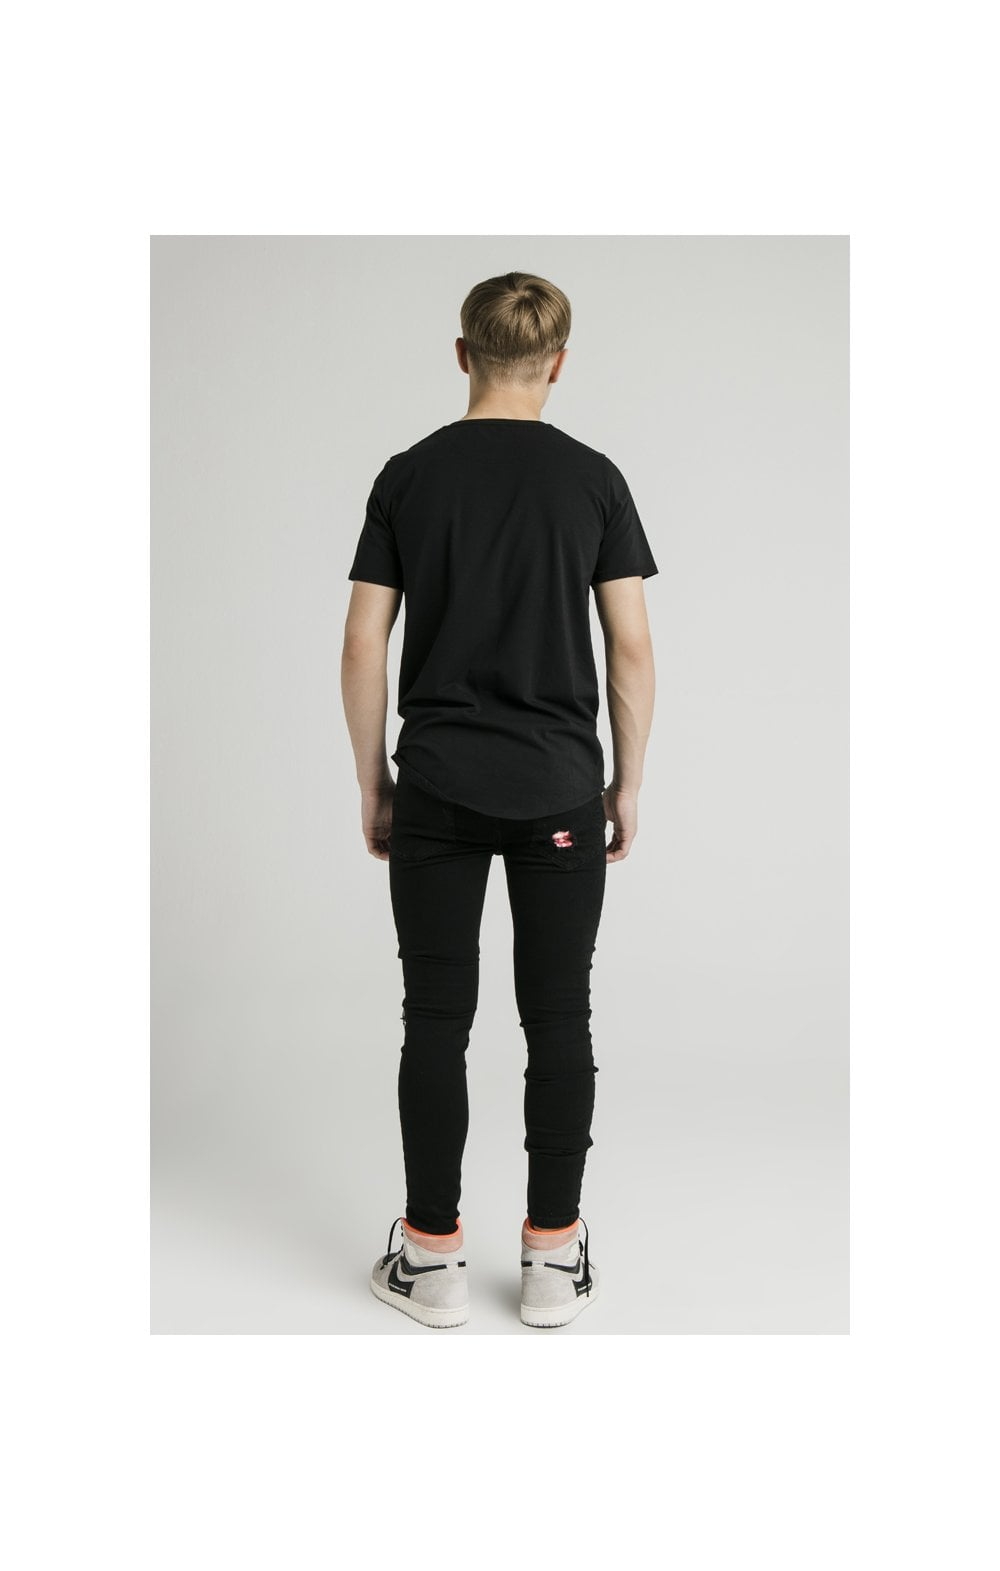 Illusive London S/S Core Tee - Black (6)